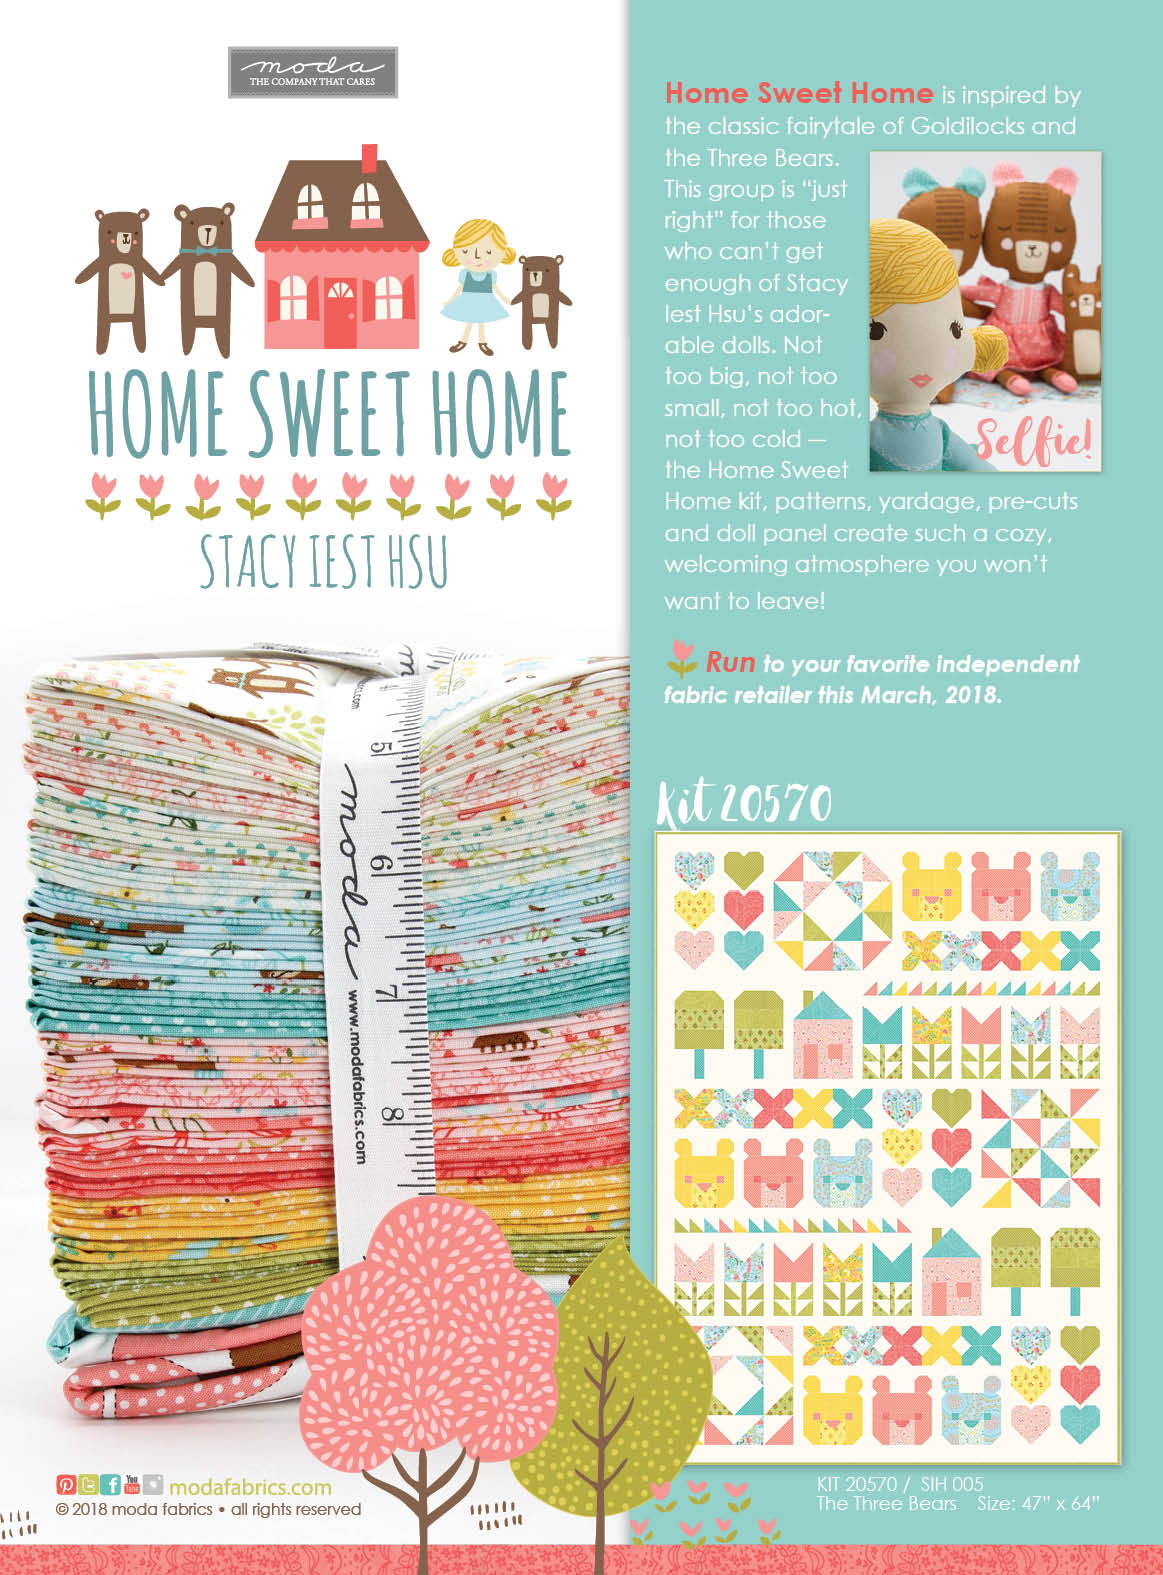 Home sweet home fabric pictures janet.